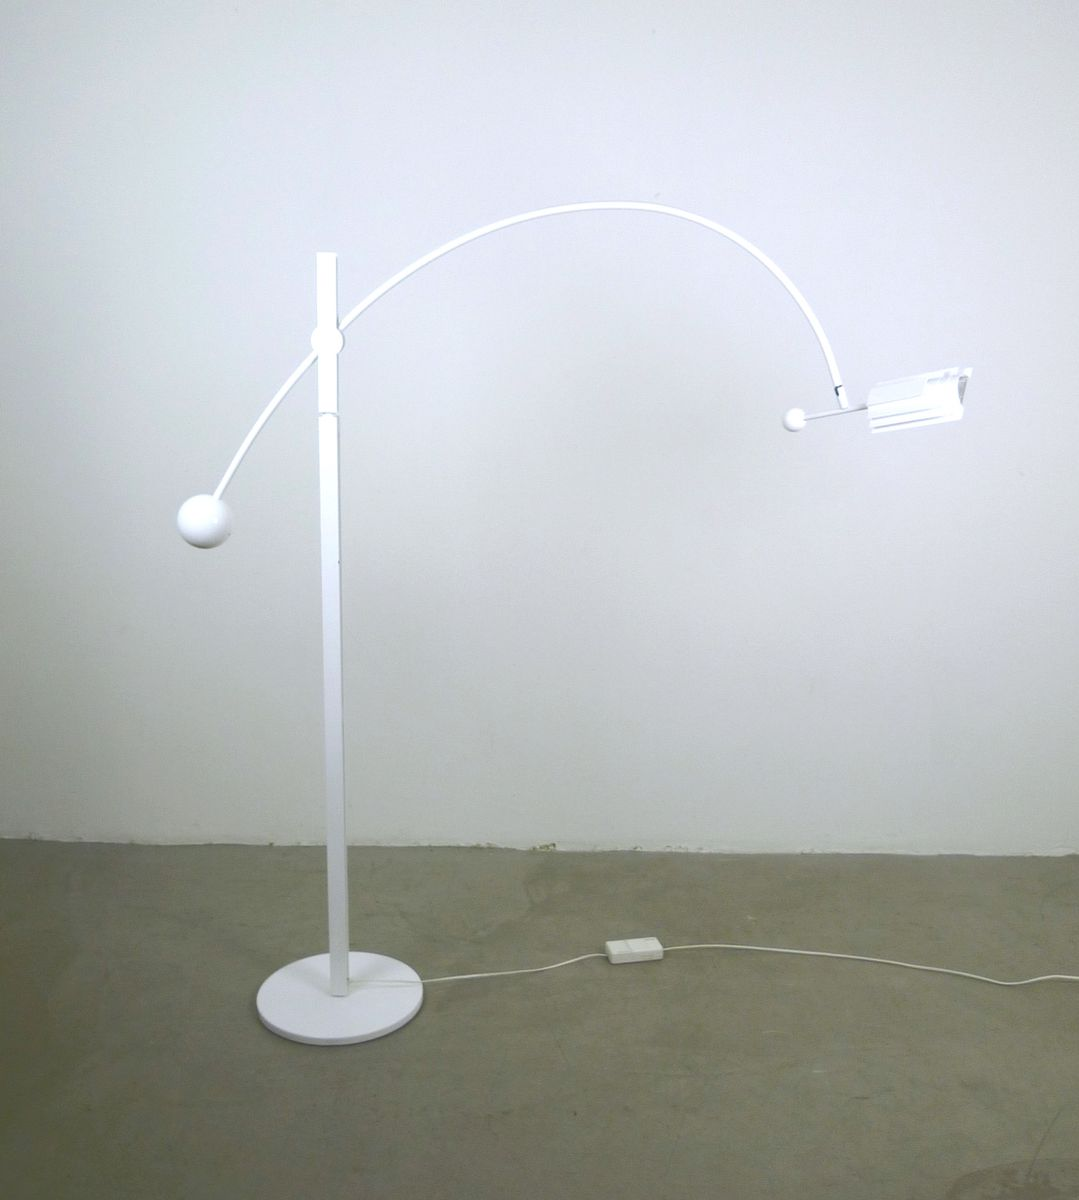 Adjustable floor lamp from swisslamps 1970s for sale at pamono for 1970s floor lamps